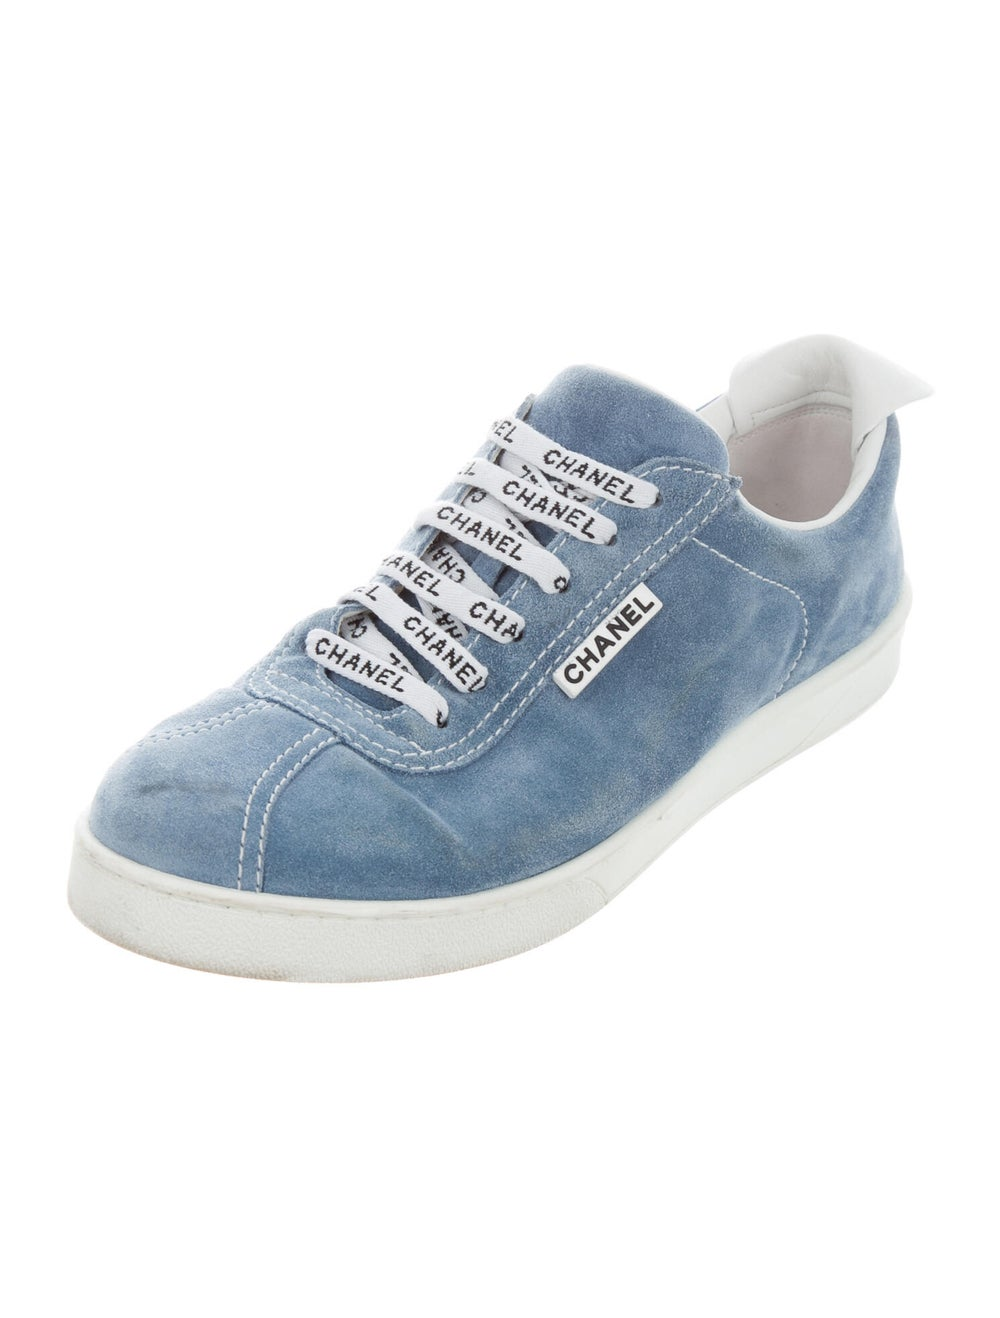 Chanel Logo Suede Sneakers Sneakers Blue - image 2